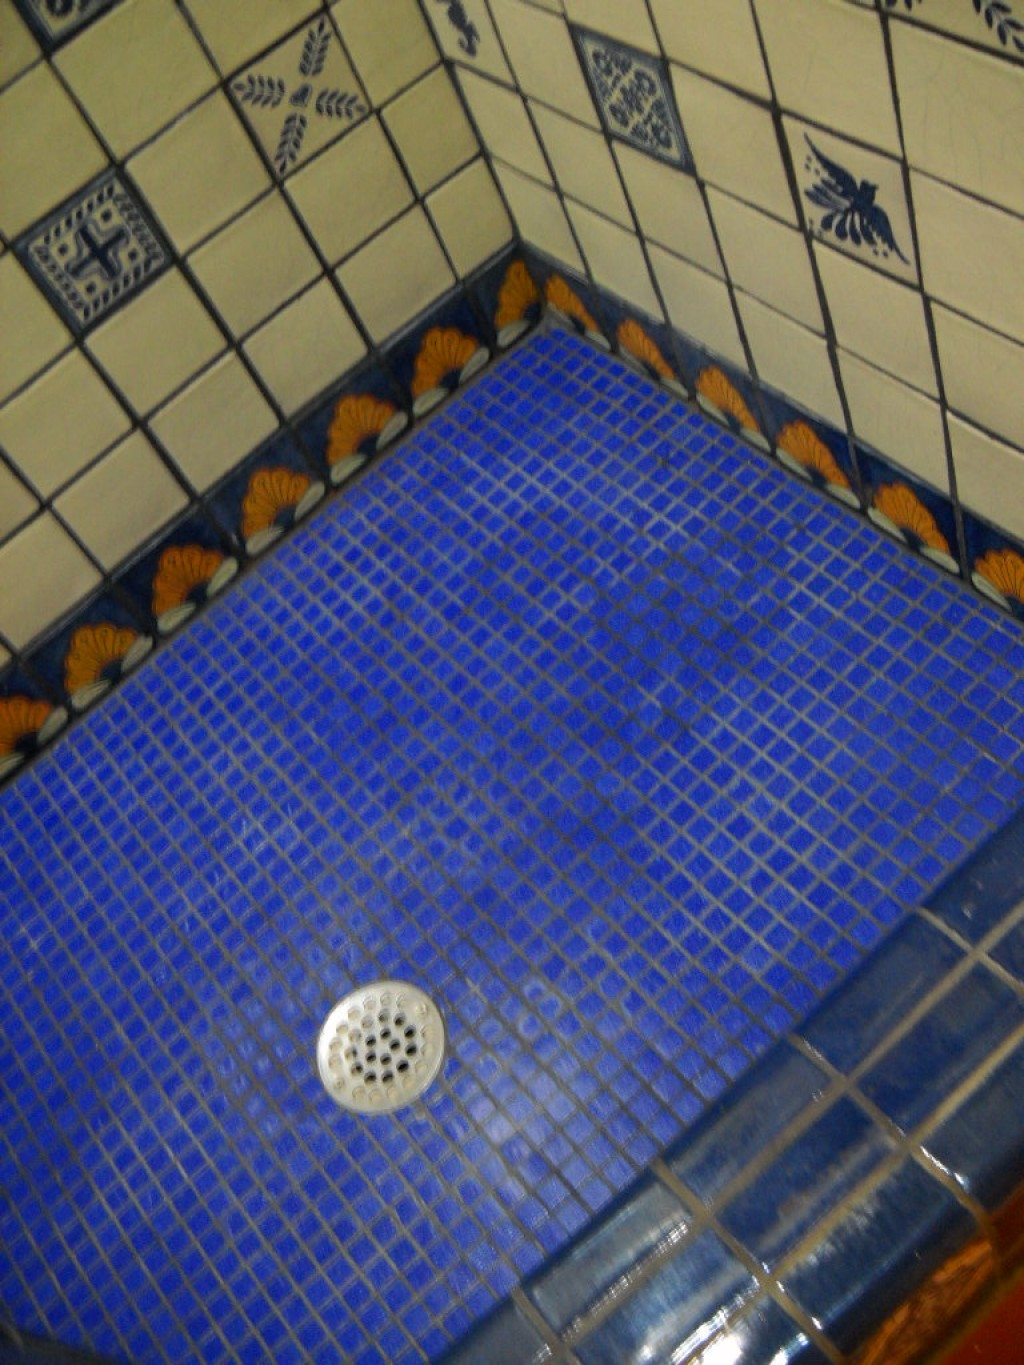 How To Prevent Clogged Pipes And Drains In Older Houses Dengarden